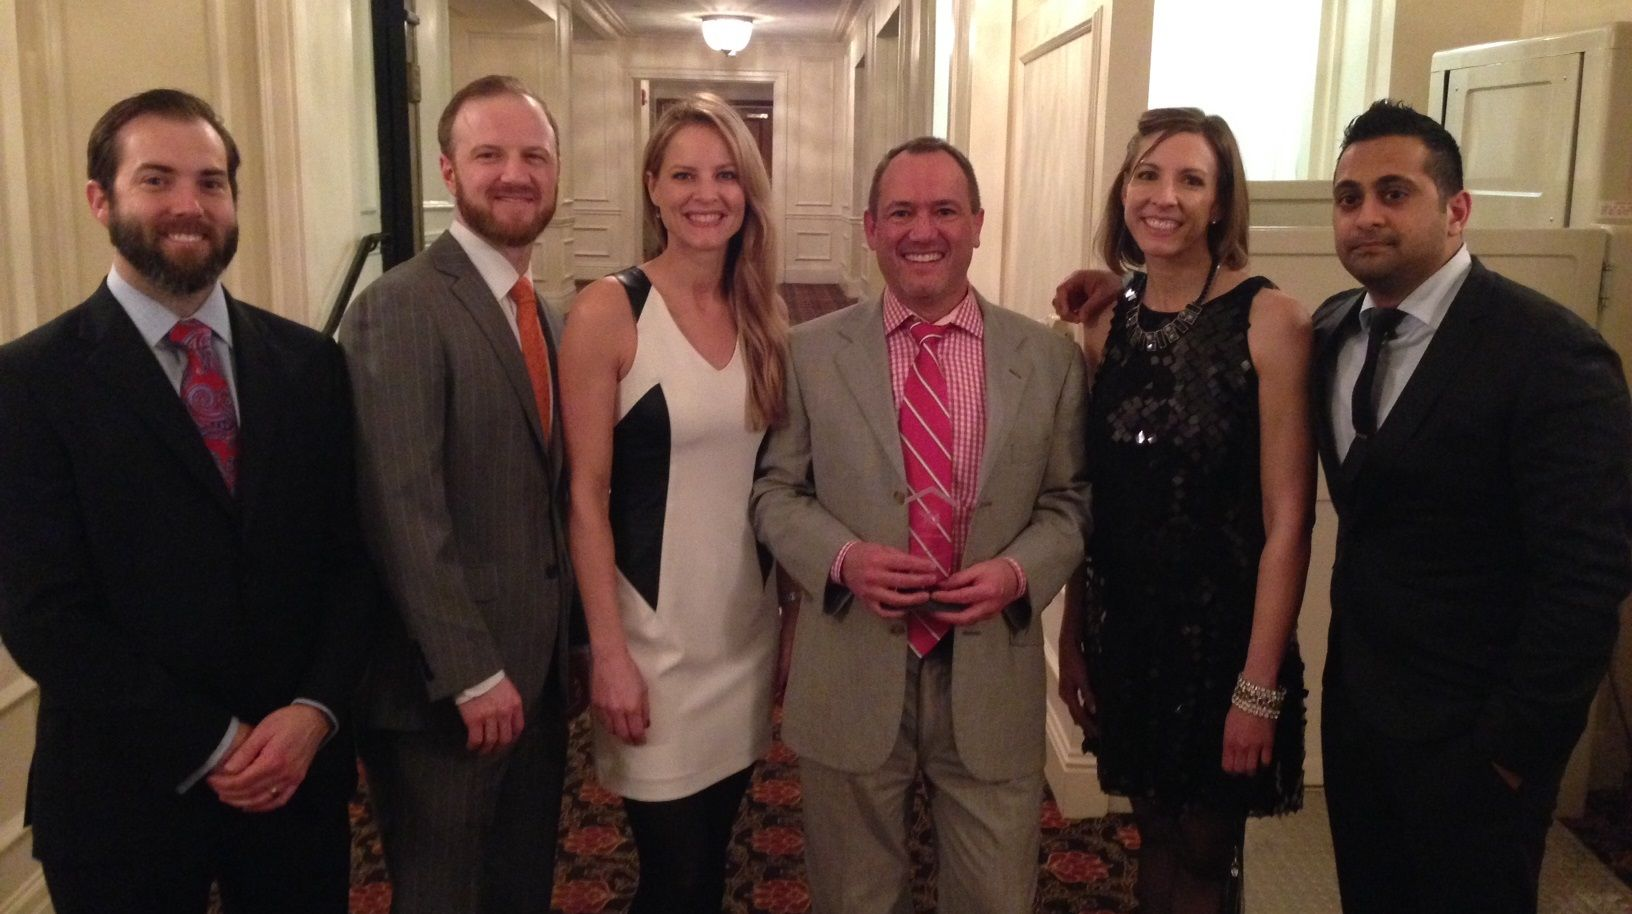 Dr  Rehm was honored to receive the annual Plastic Surgery